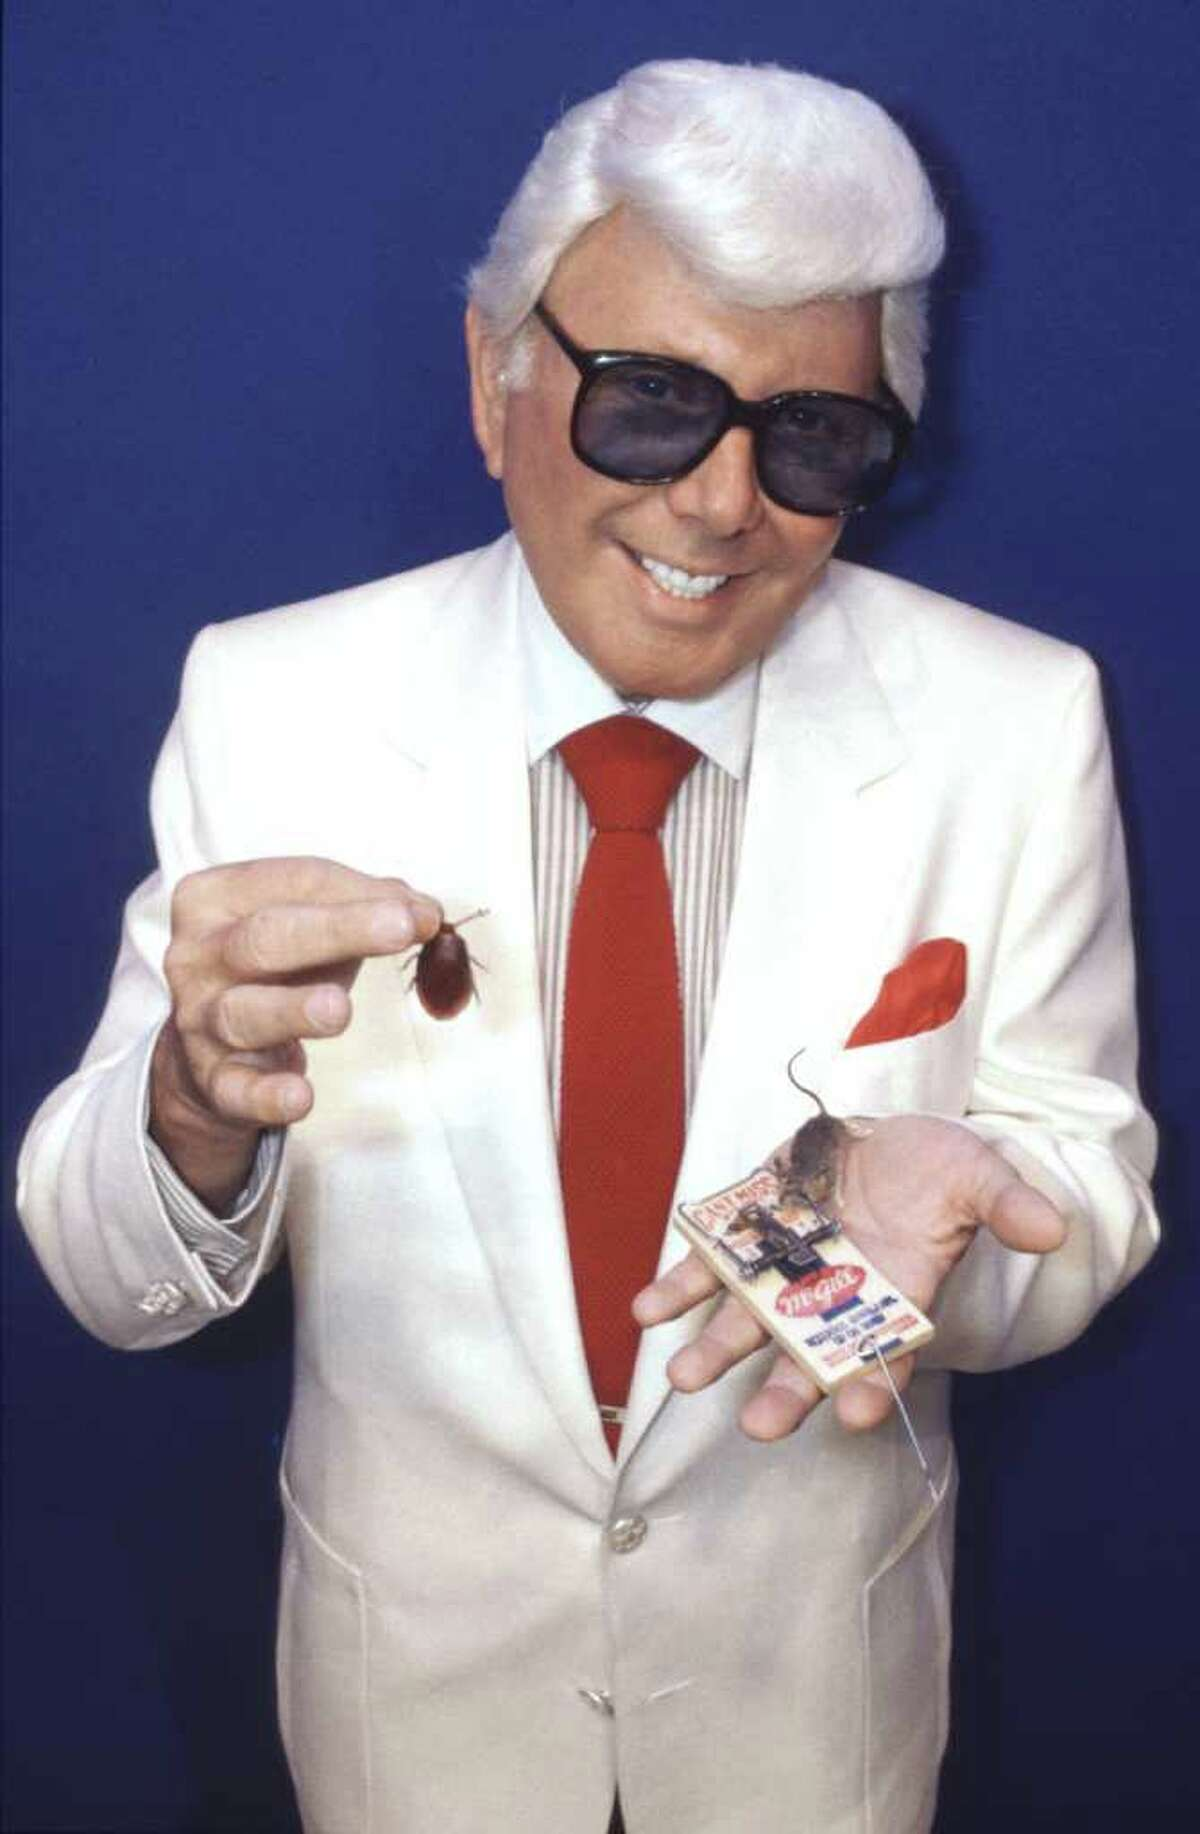 02/26/1986 -- Marvin Zindler - rat and roach report. 1986 The Houston Post Co.